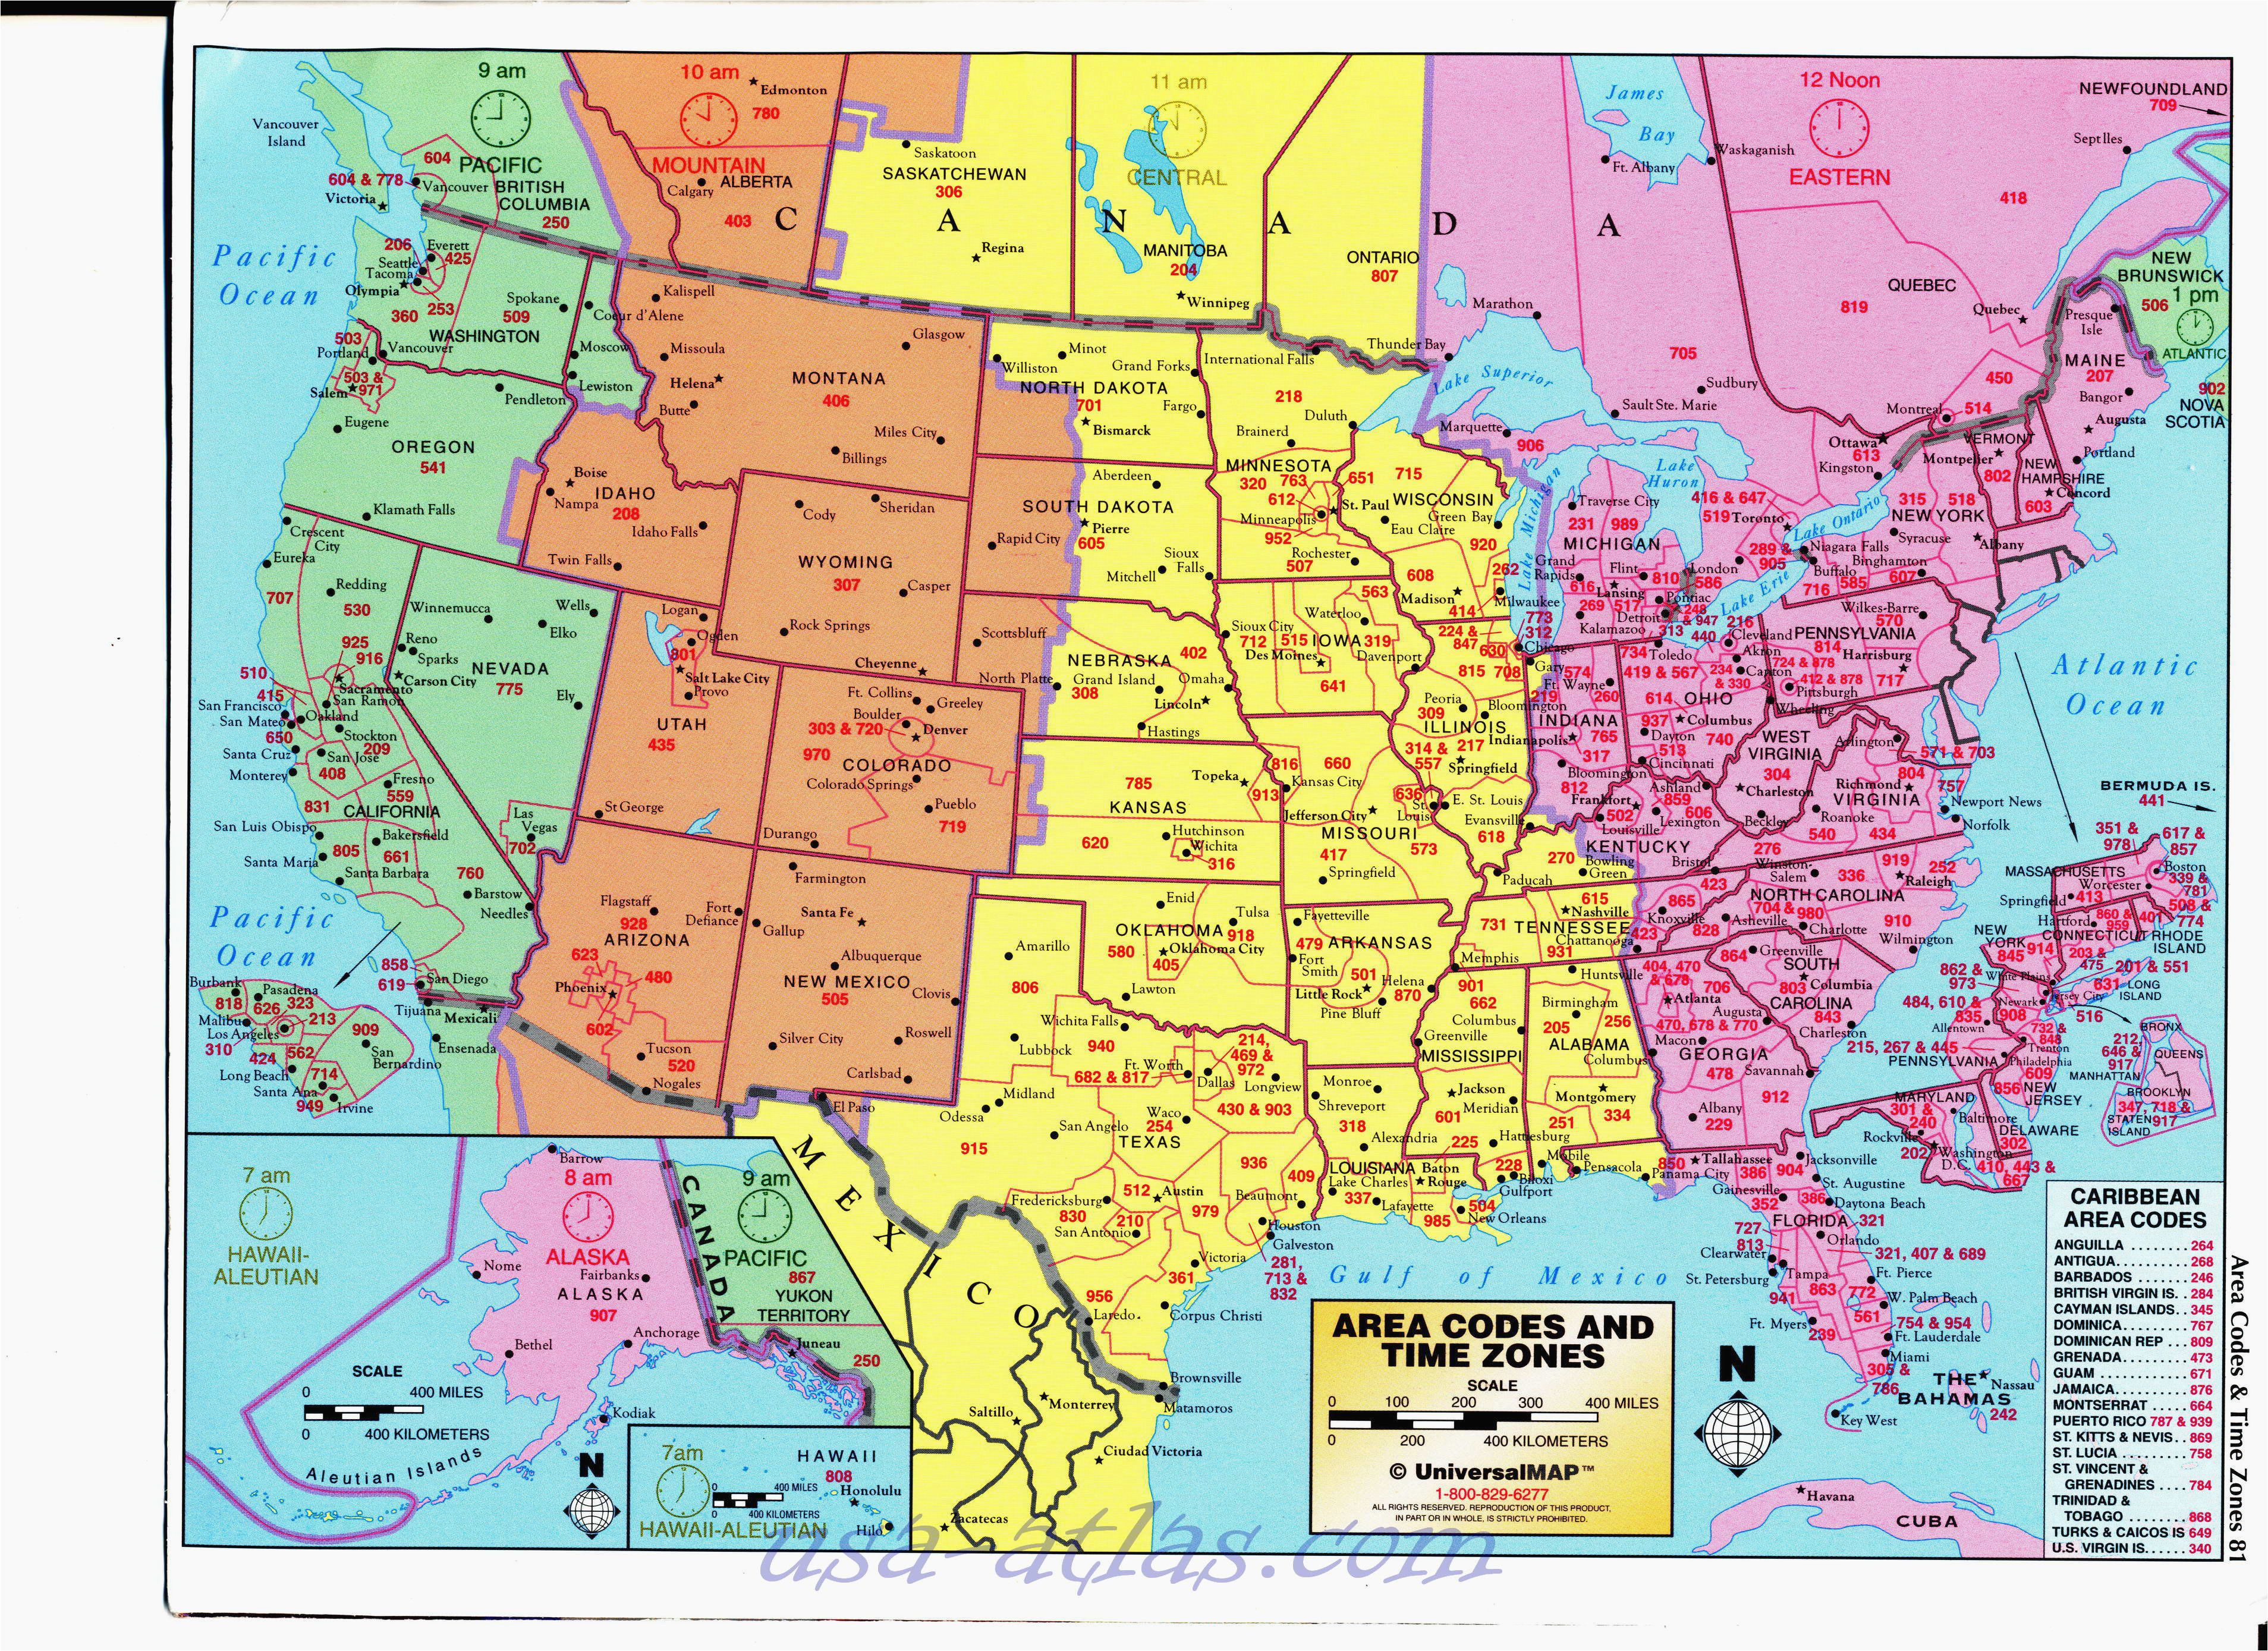 Warren oregon Map Princeton oregon Map Us area Code Map with Time Zones Uas Map the